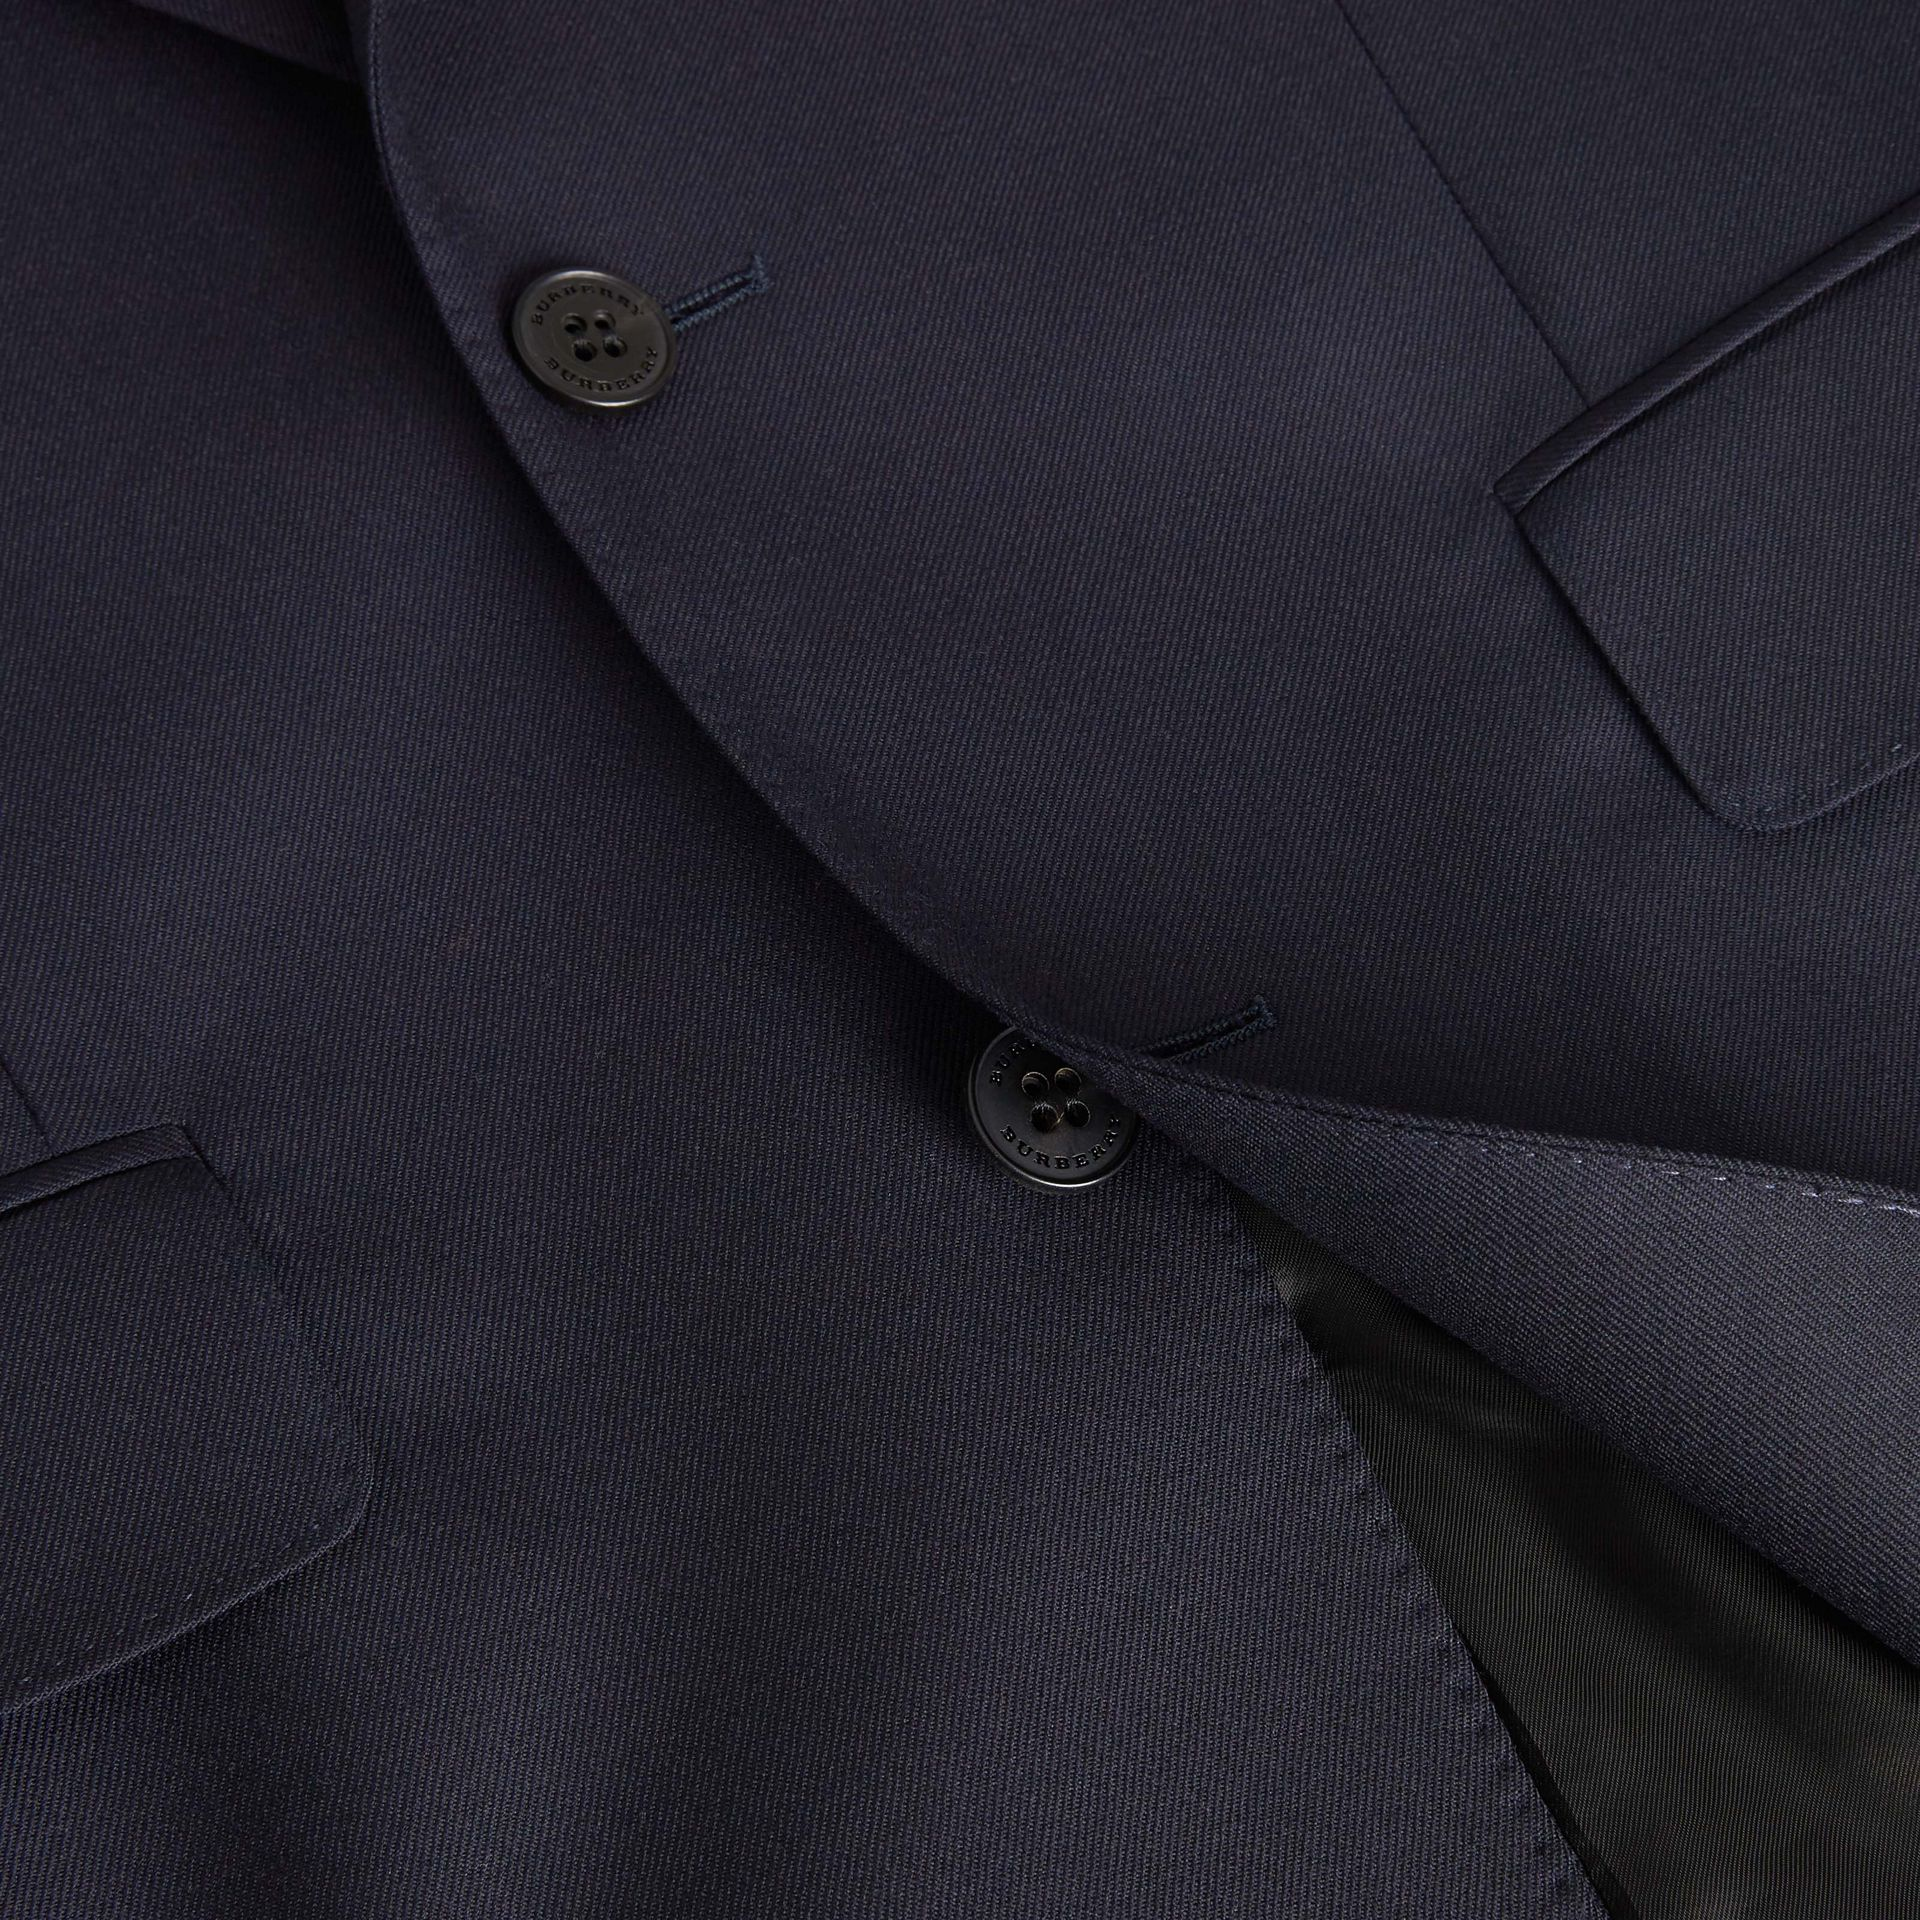 Classic Fit Wool Twill Suit in Navy - Men | Burberry United States - gallery image 9